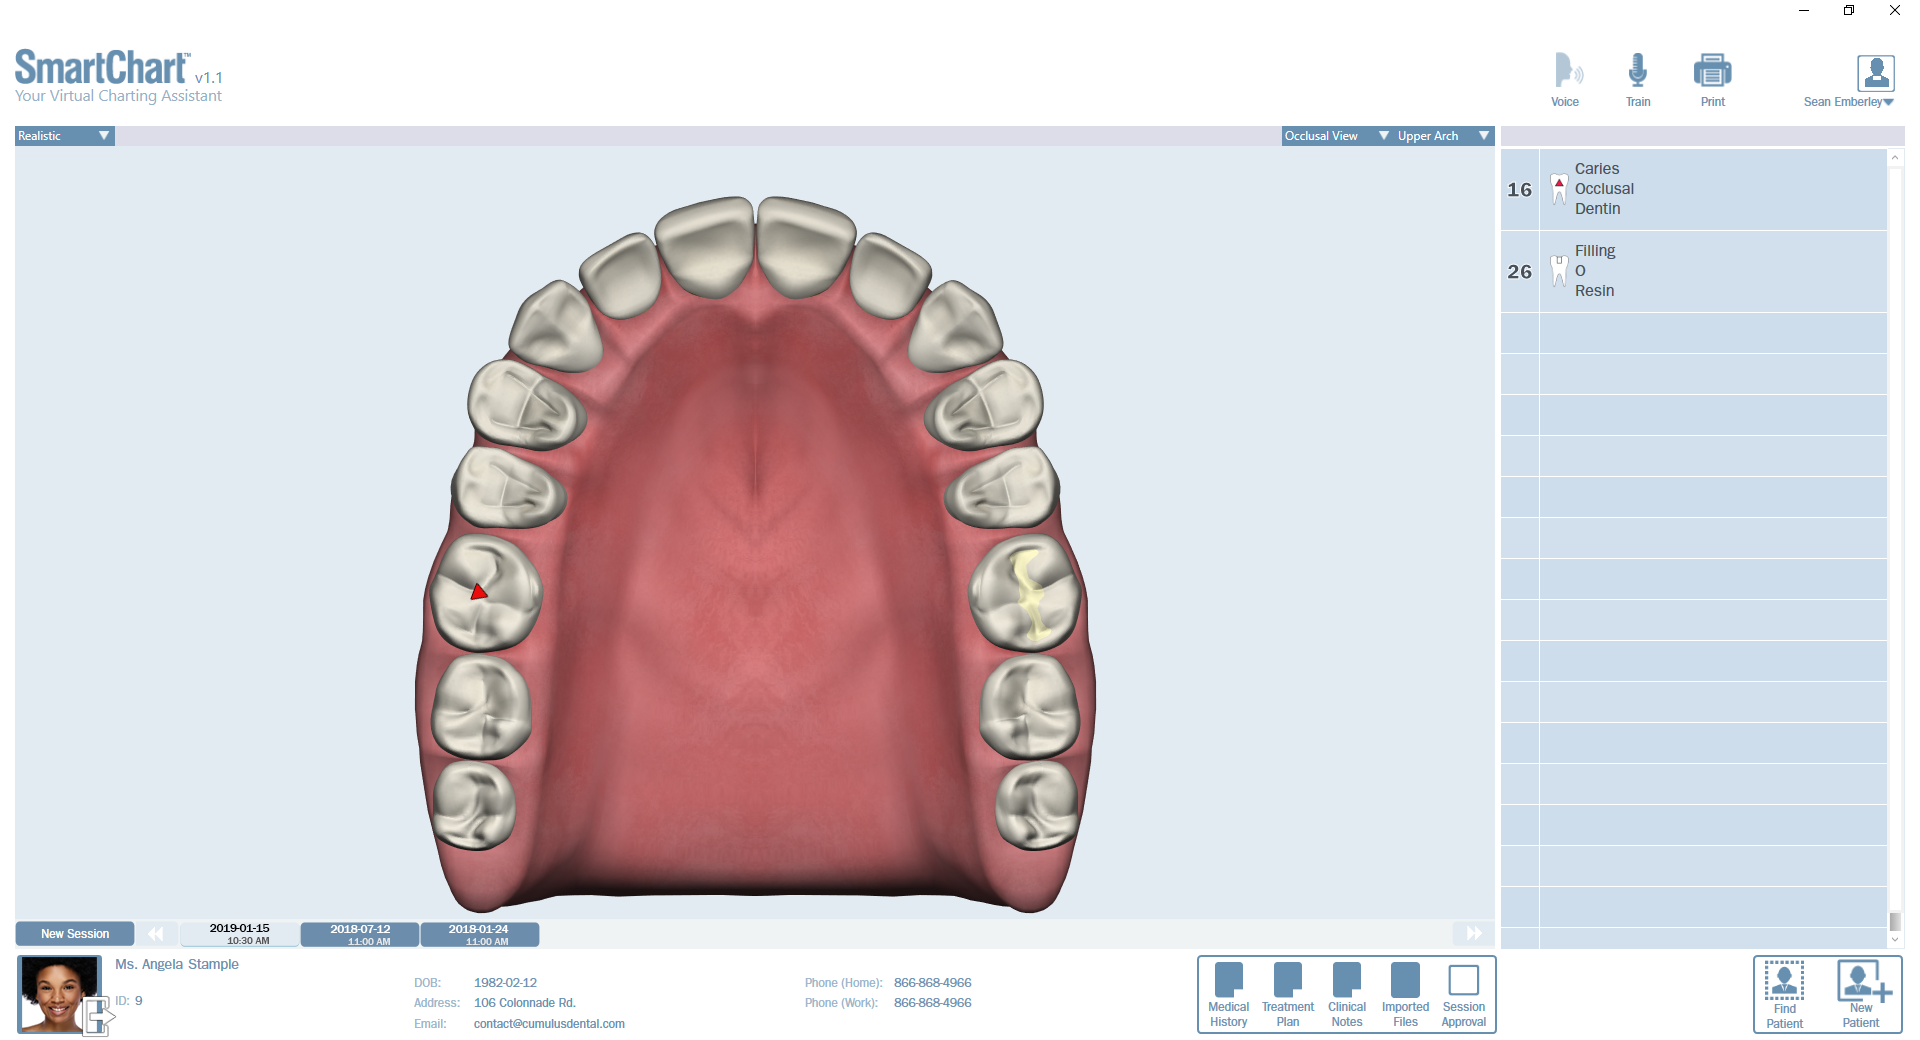 Patient1-Odontogram-Upper-Occlusal.png